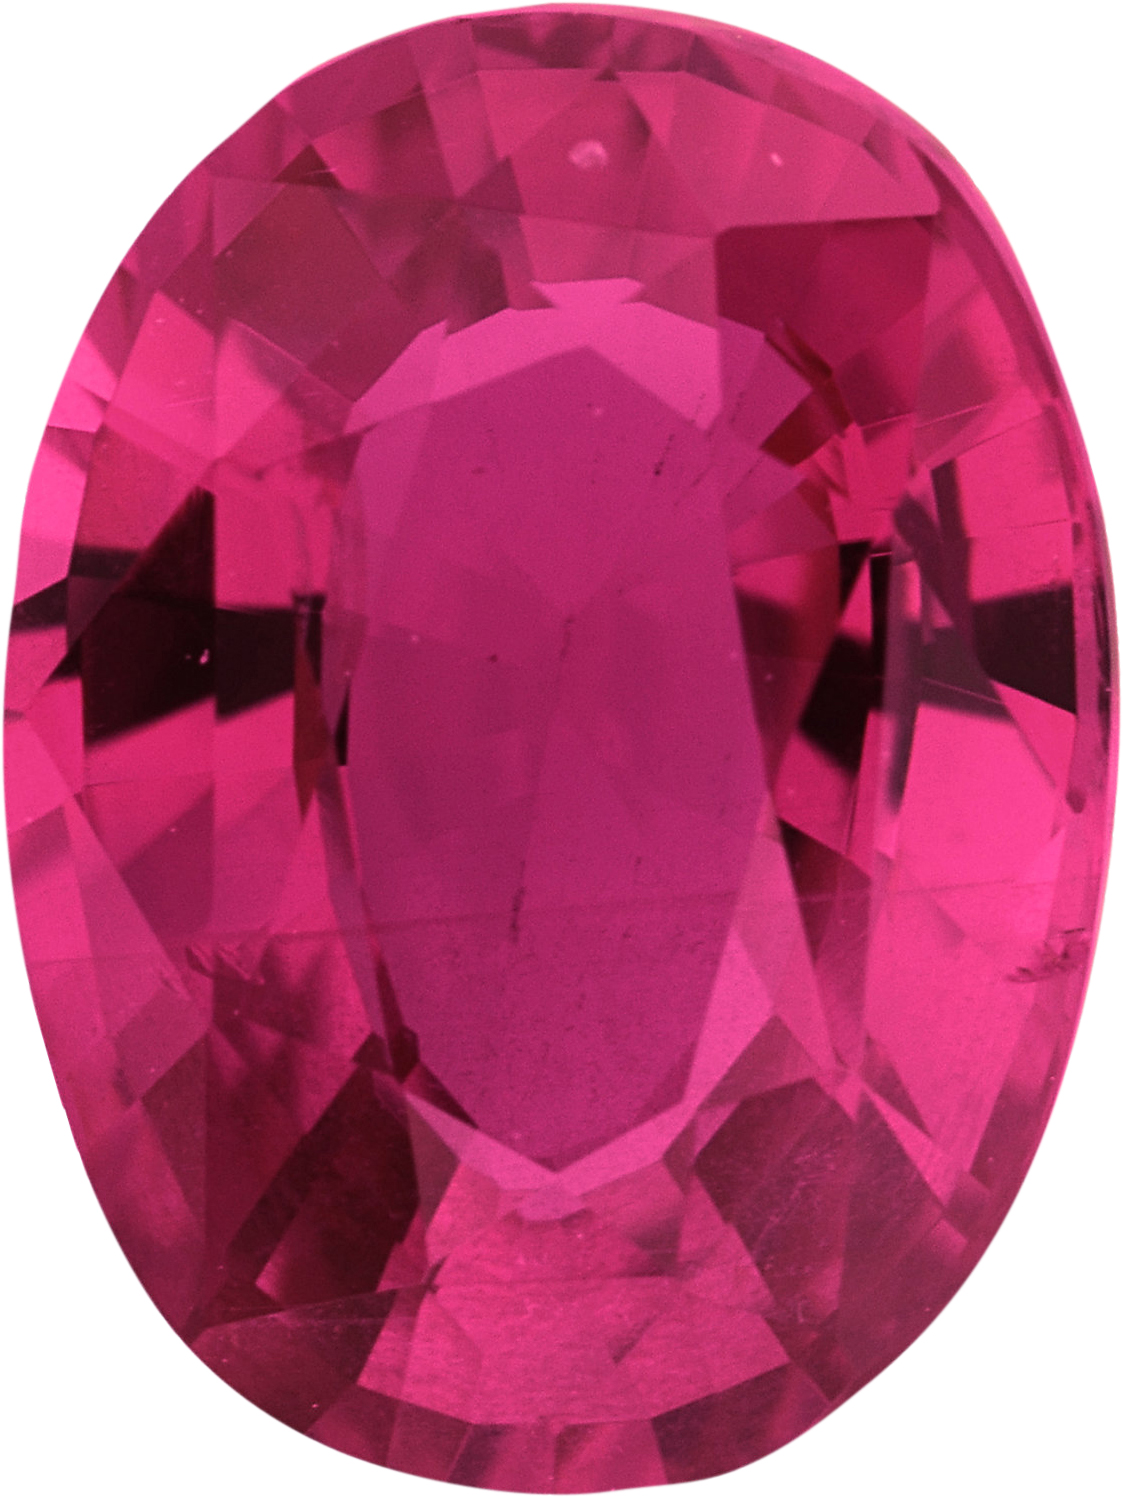 Special  Untreated Ruby Loose Gem in Oval Cut, Medium Purple Red, 8.67 x 6.47  mm, 2.05 Carats